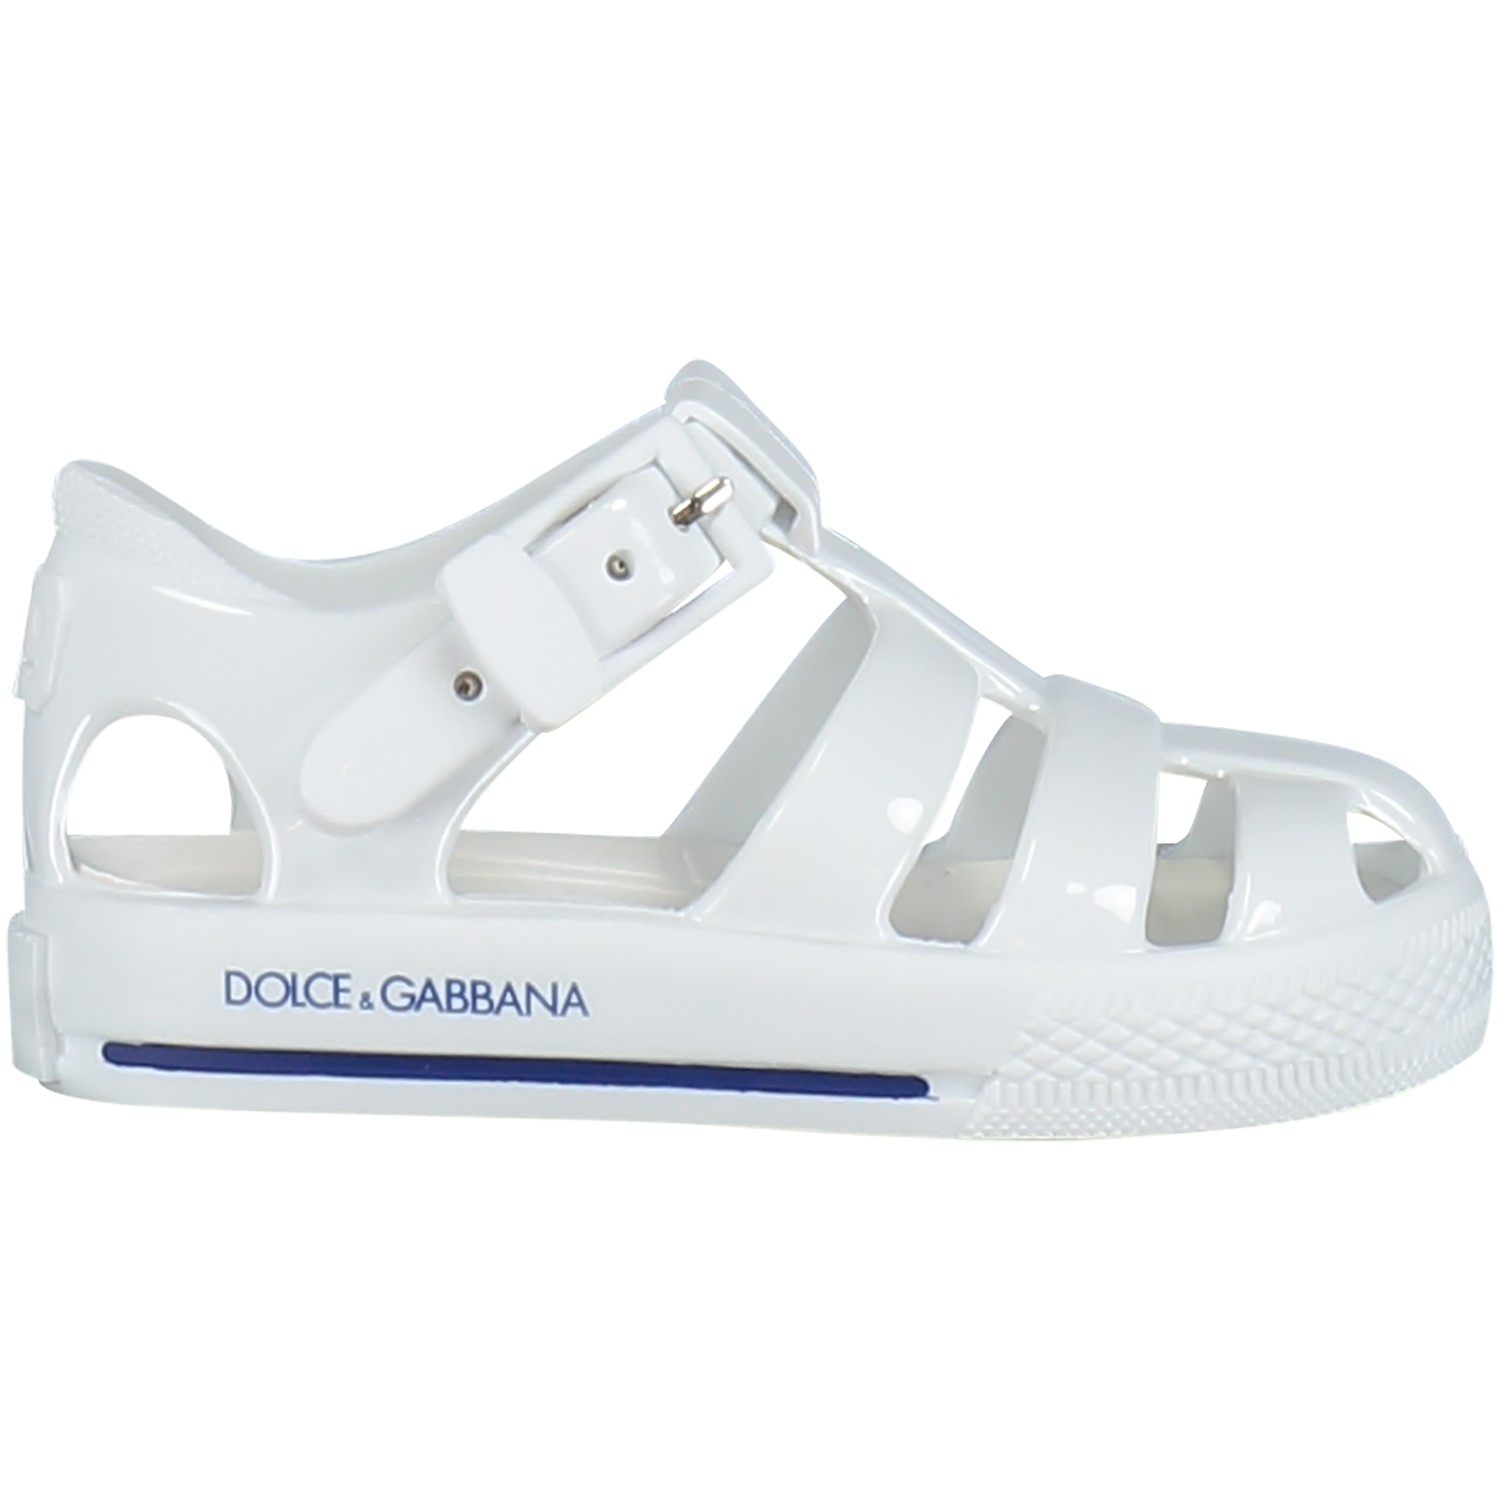 Picture of Dolce & Gabbana DN0013 kids sandal white